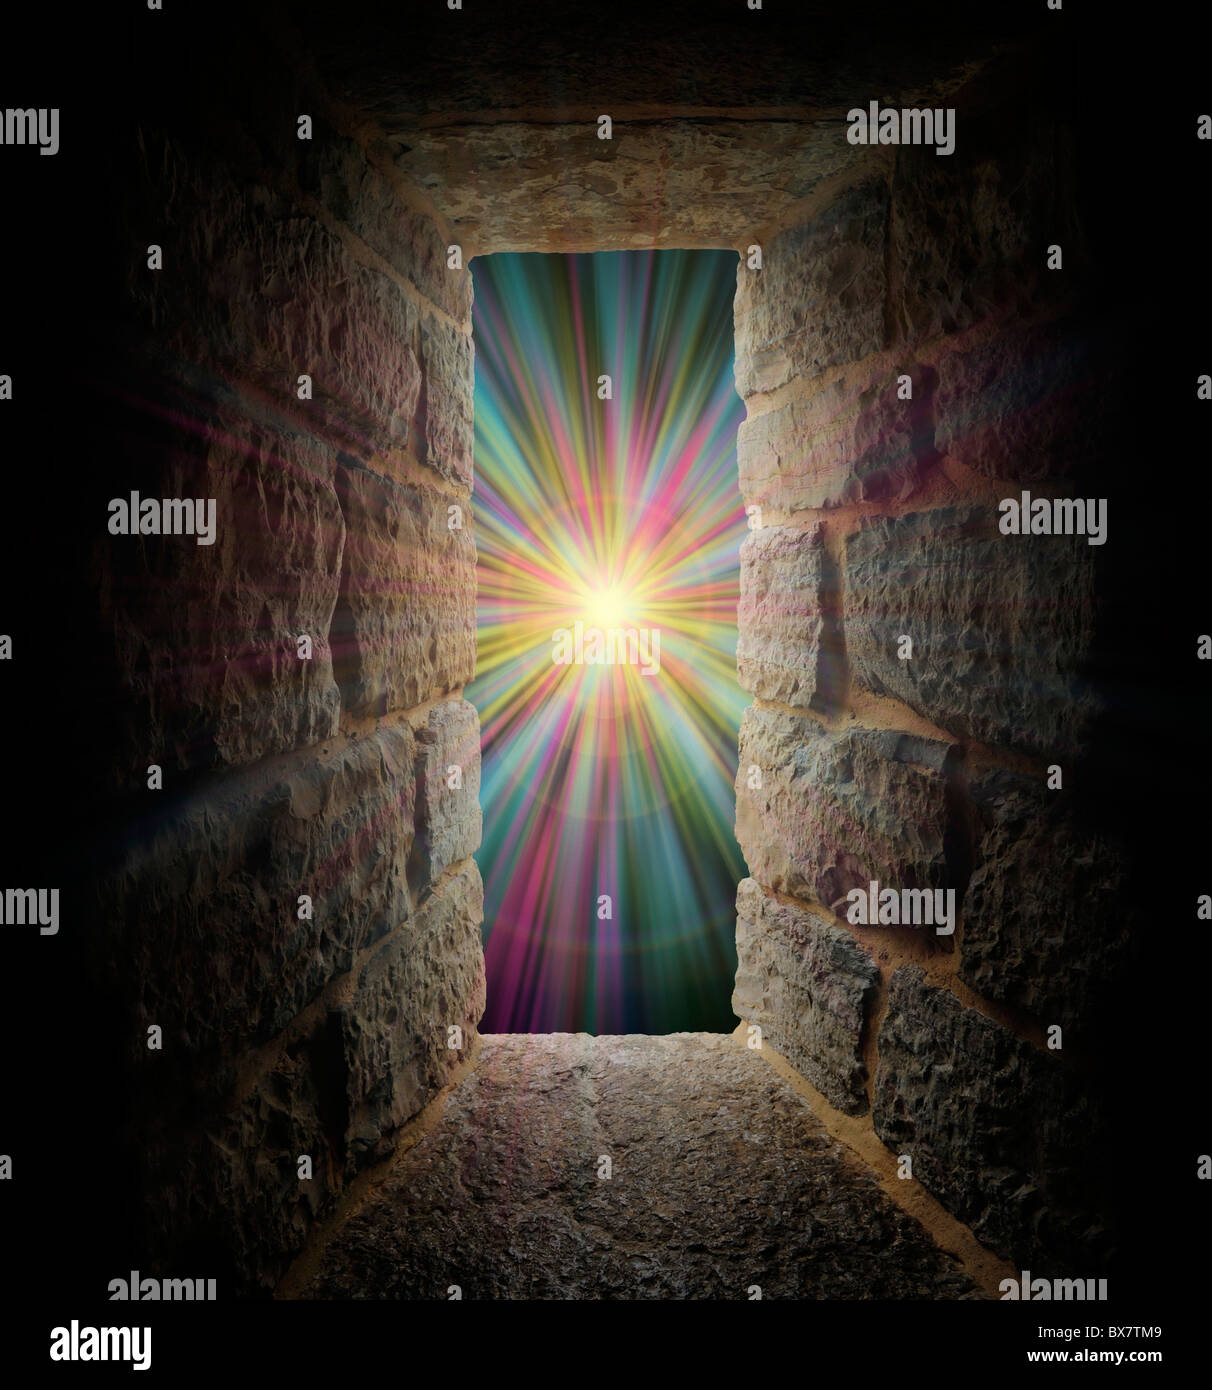 Mystical stone window, entrance or portal to a pastel vortex - Stock Image